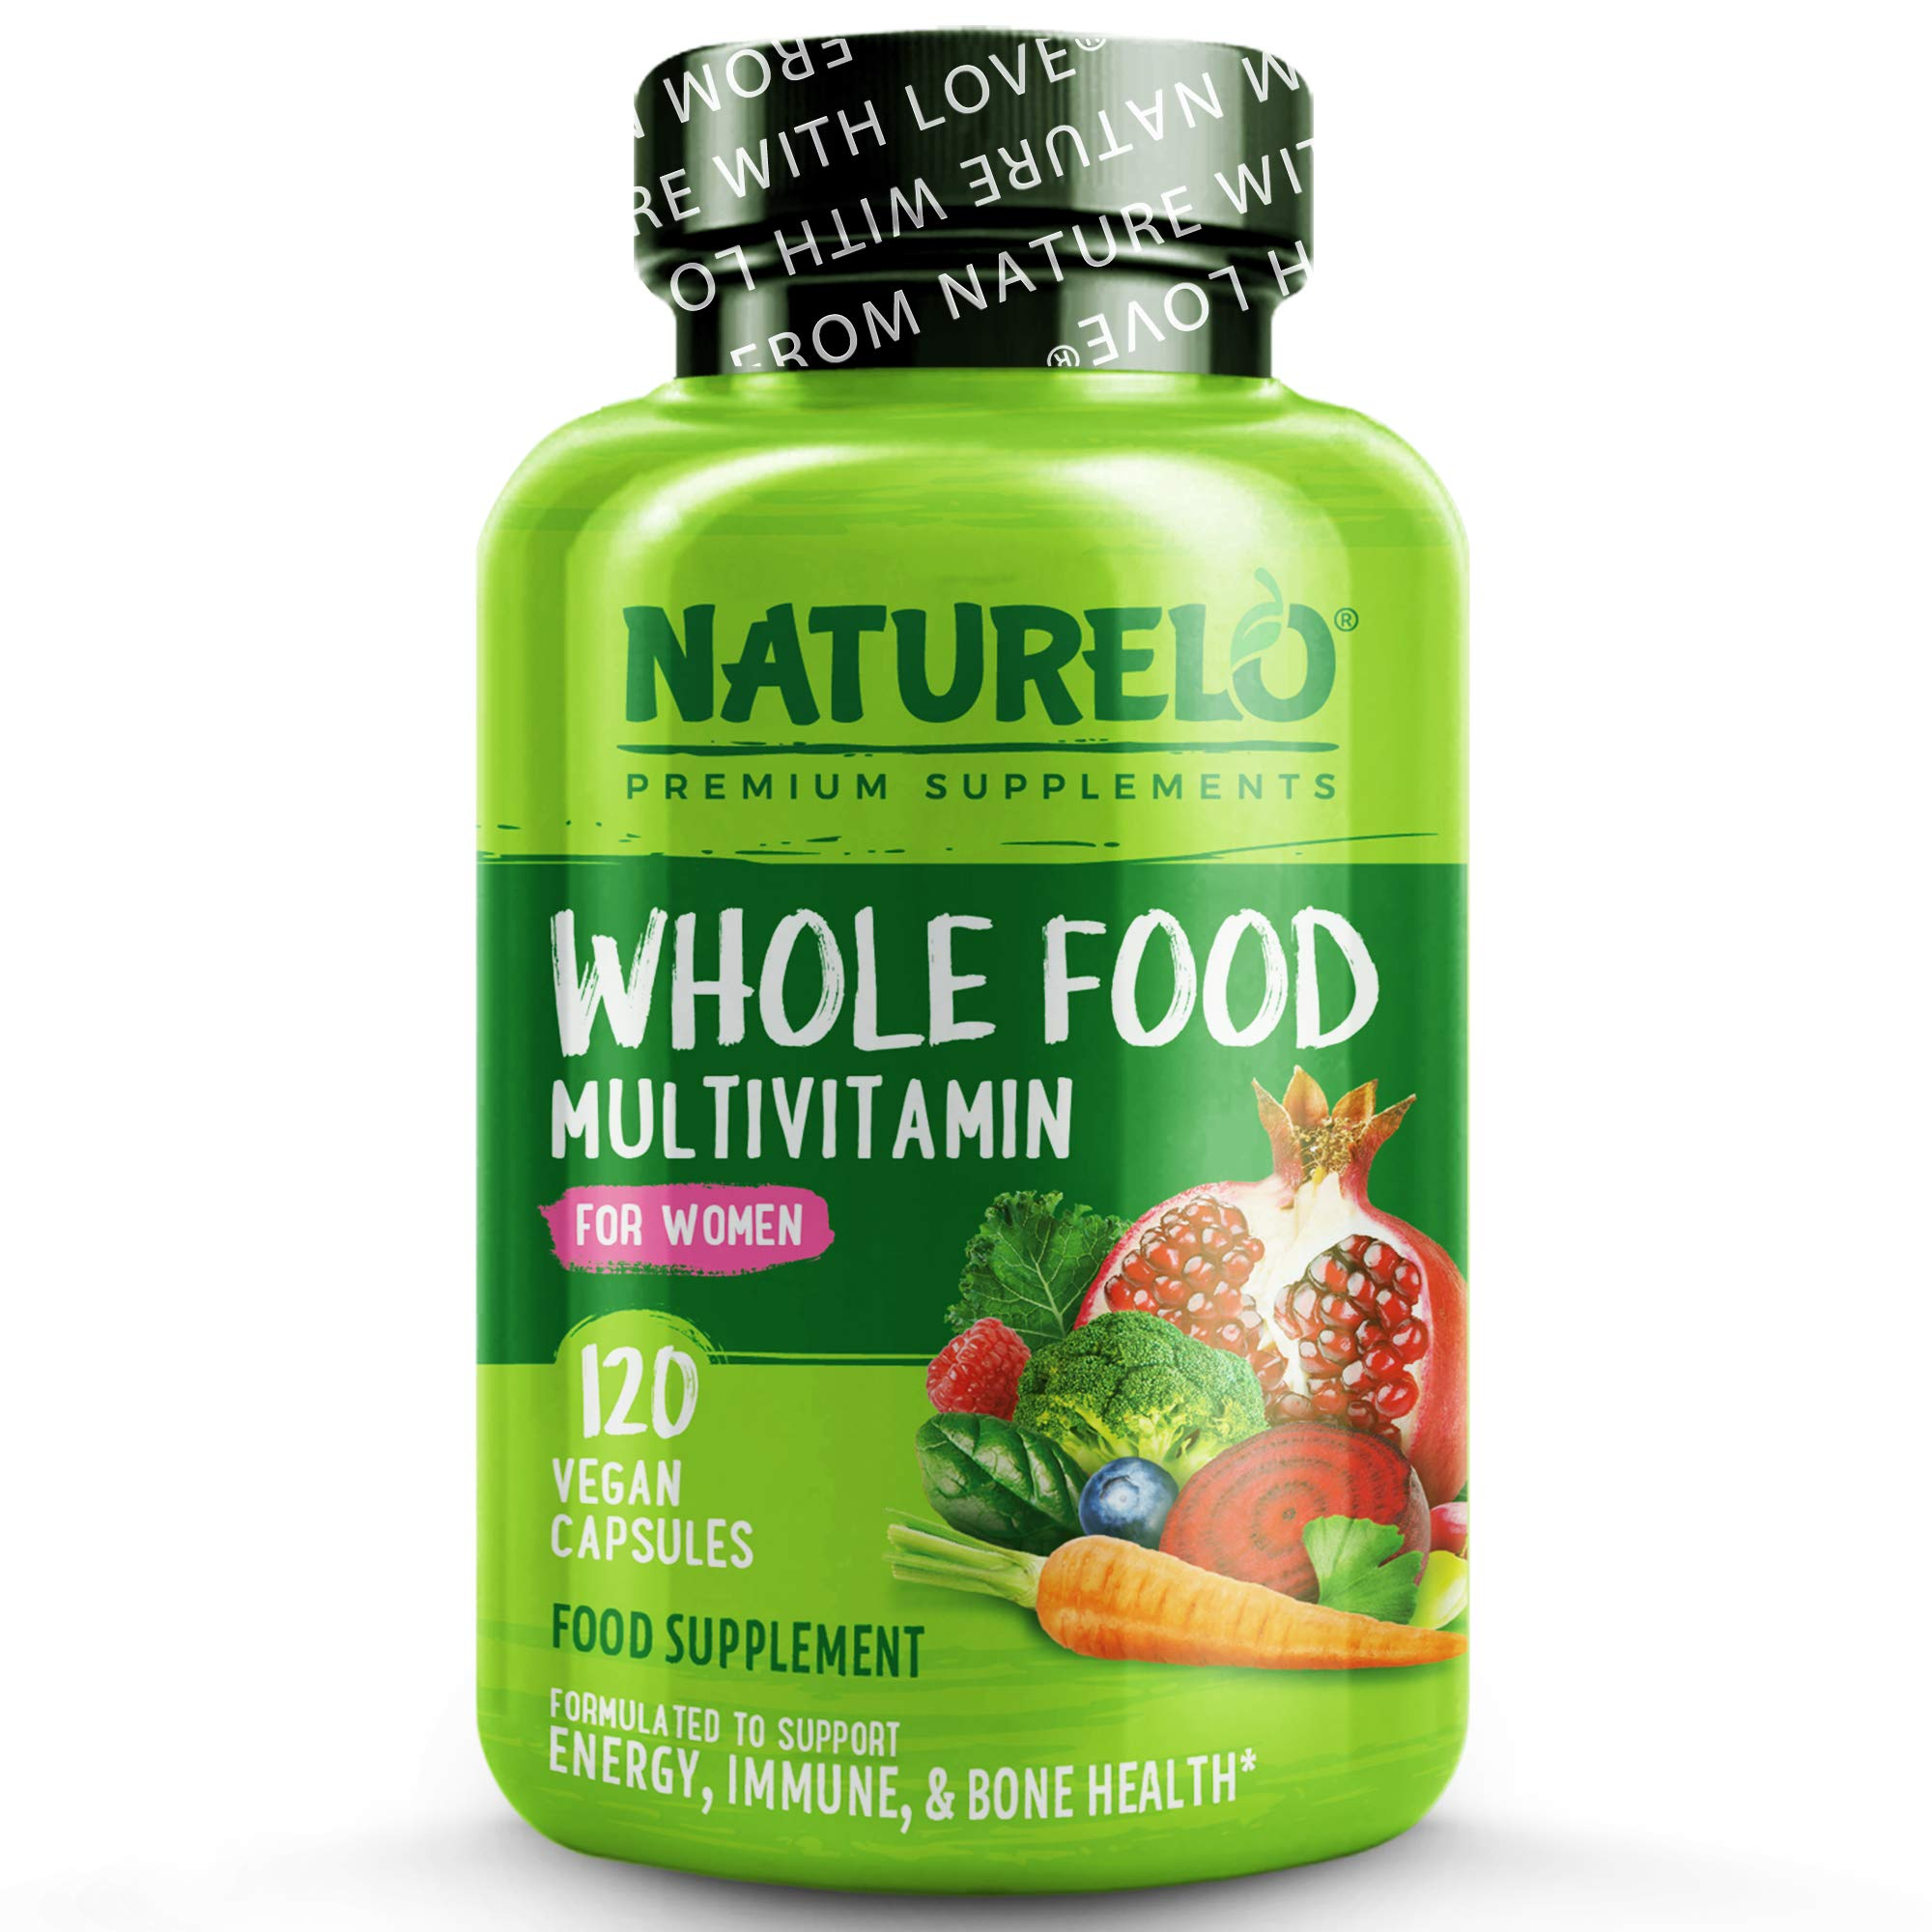 NATURELO Whole Food Multivitamin for Women - with Natural Vitamins, Minerals, Botanical Blends - Best Complete Formula for Wellness, Energy, Brain, Eye Health - 120 Vegan Capsules | 1 Month Supply